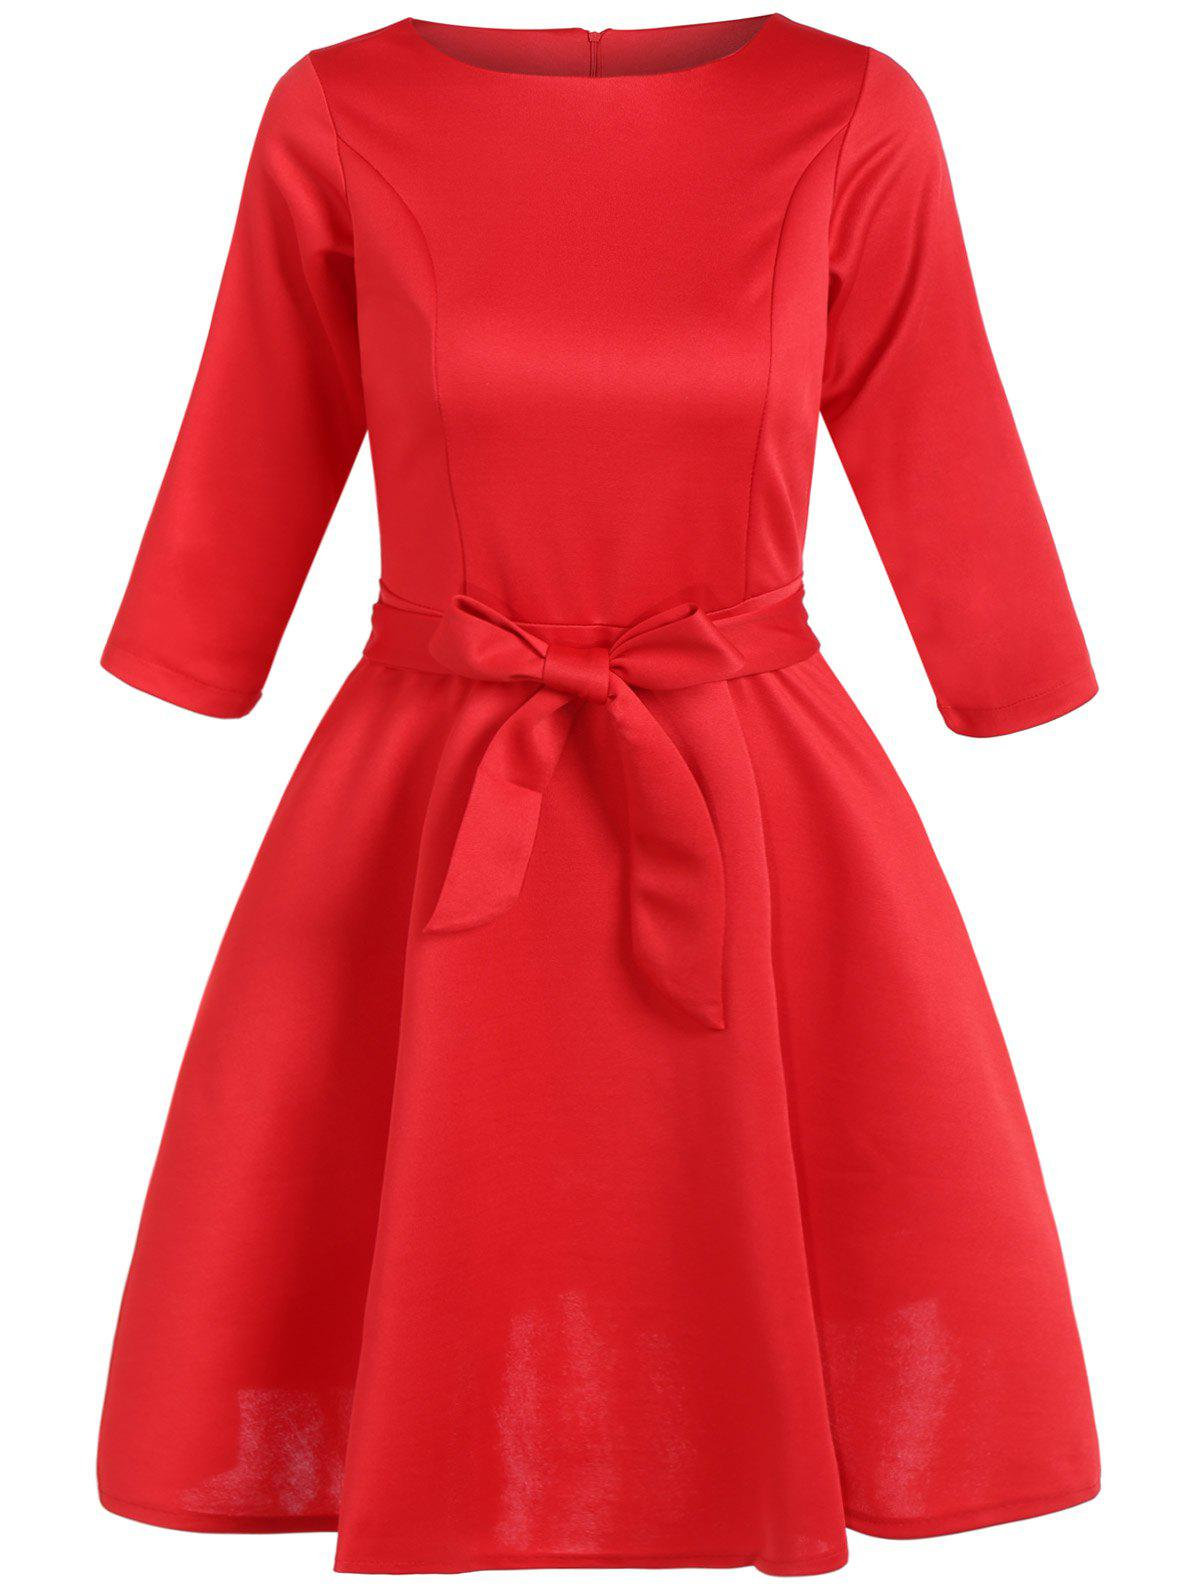 Slim Fit Bowknot Tied Belt Swing Dress - RED L